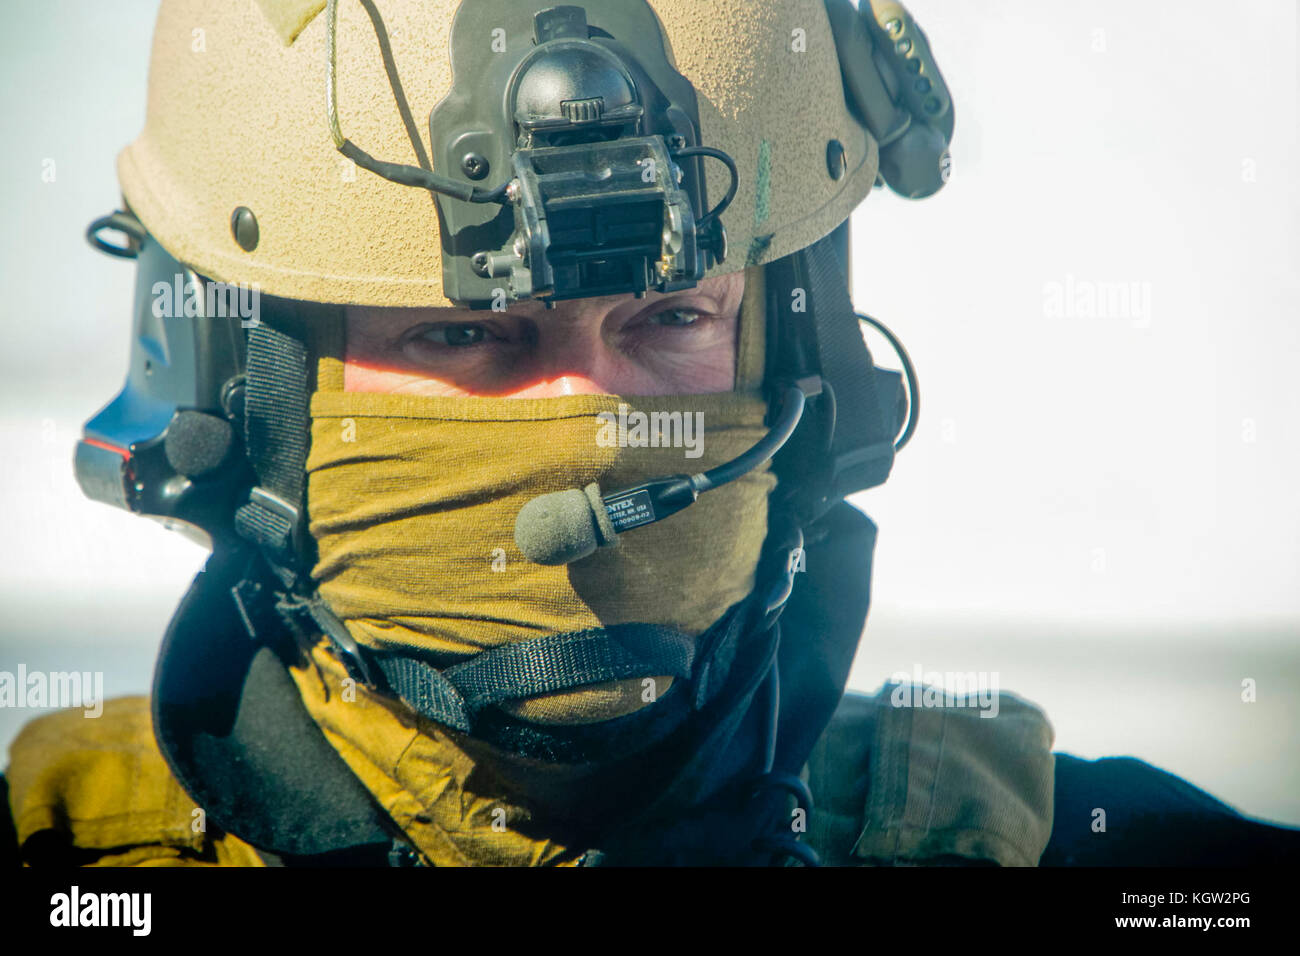 Close-up of United States Custom and Border Protection (USCBP) Air Interdiction Officer UH-60 Black Hawk helicopter - Stock Image